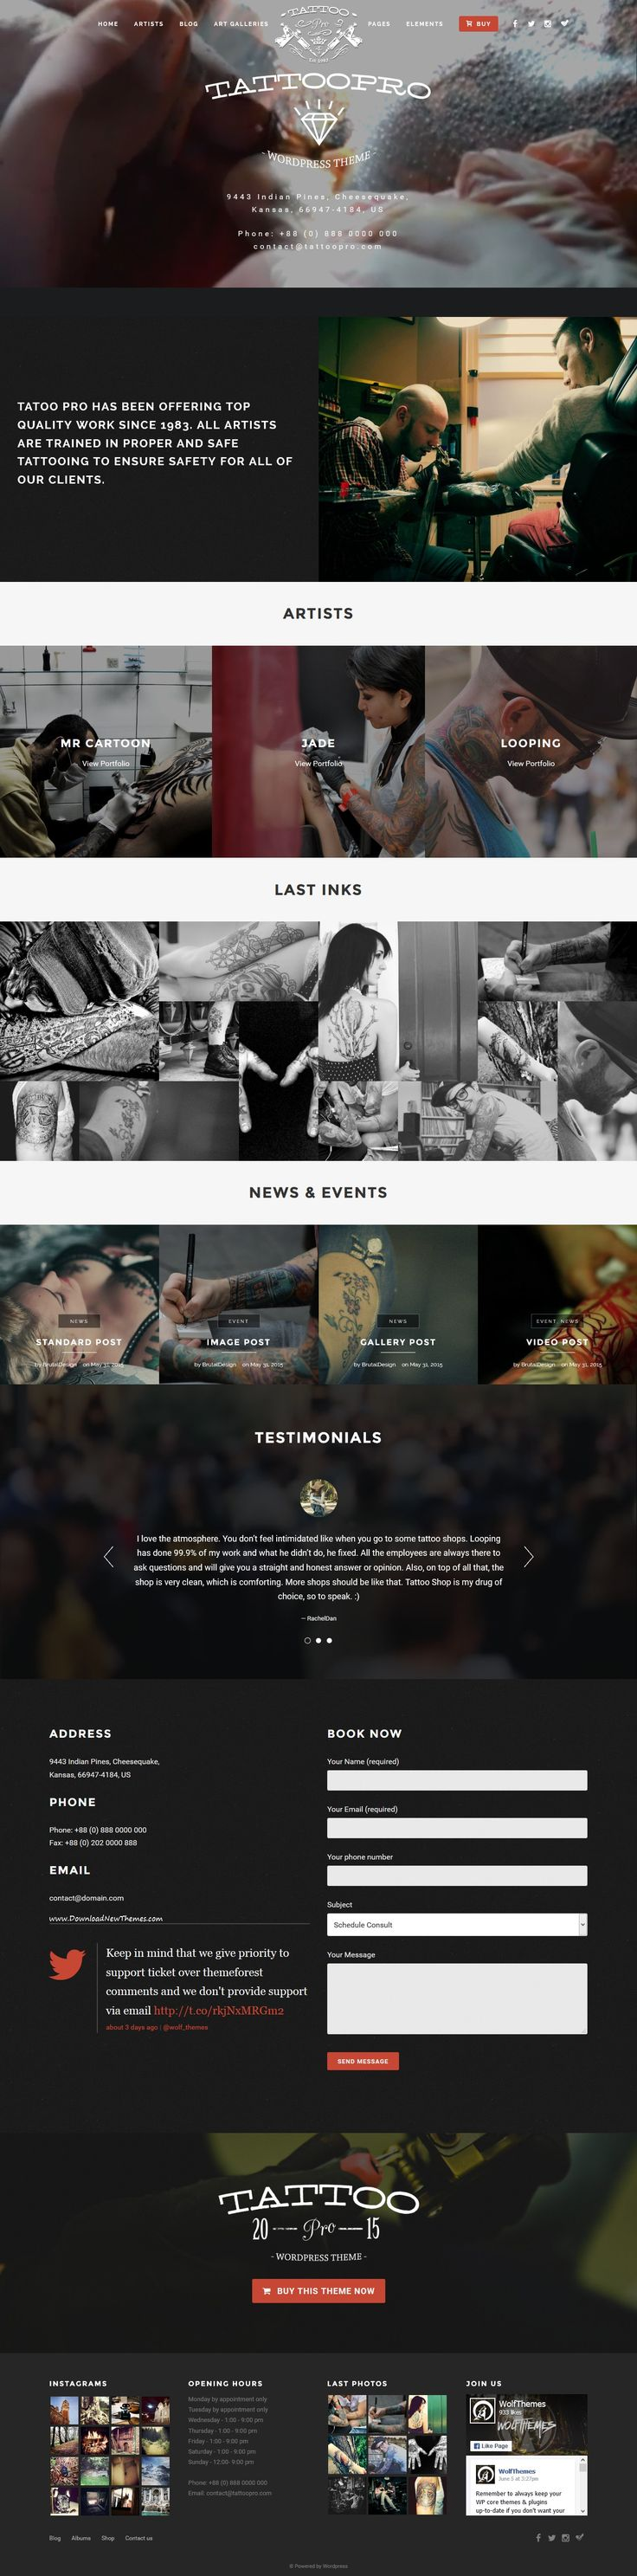 Tattoo Pro is a premium Wordpress theme for your #Tattoo #Shop. It uses the power of #WordPress to allows you to create a neat website very easily. It includes all the features you need to showcase your work. 5 different blog layouts available, multiple galleries and sliders for your photos and so much more! Get a professional #website for your business now!